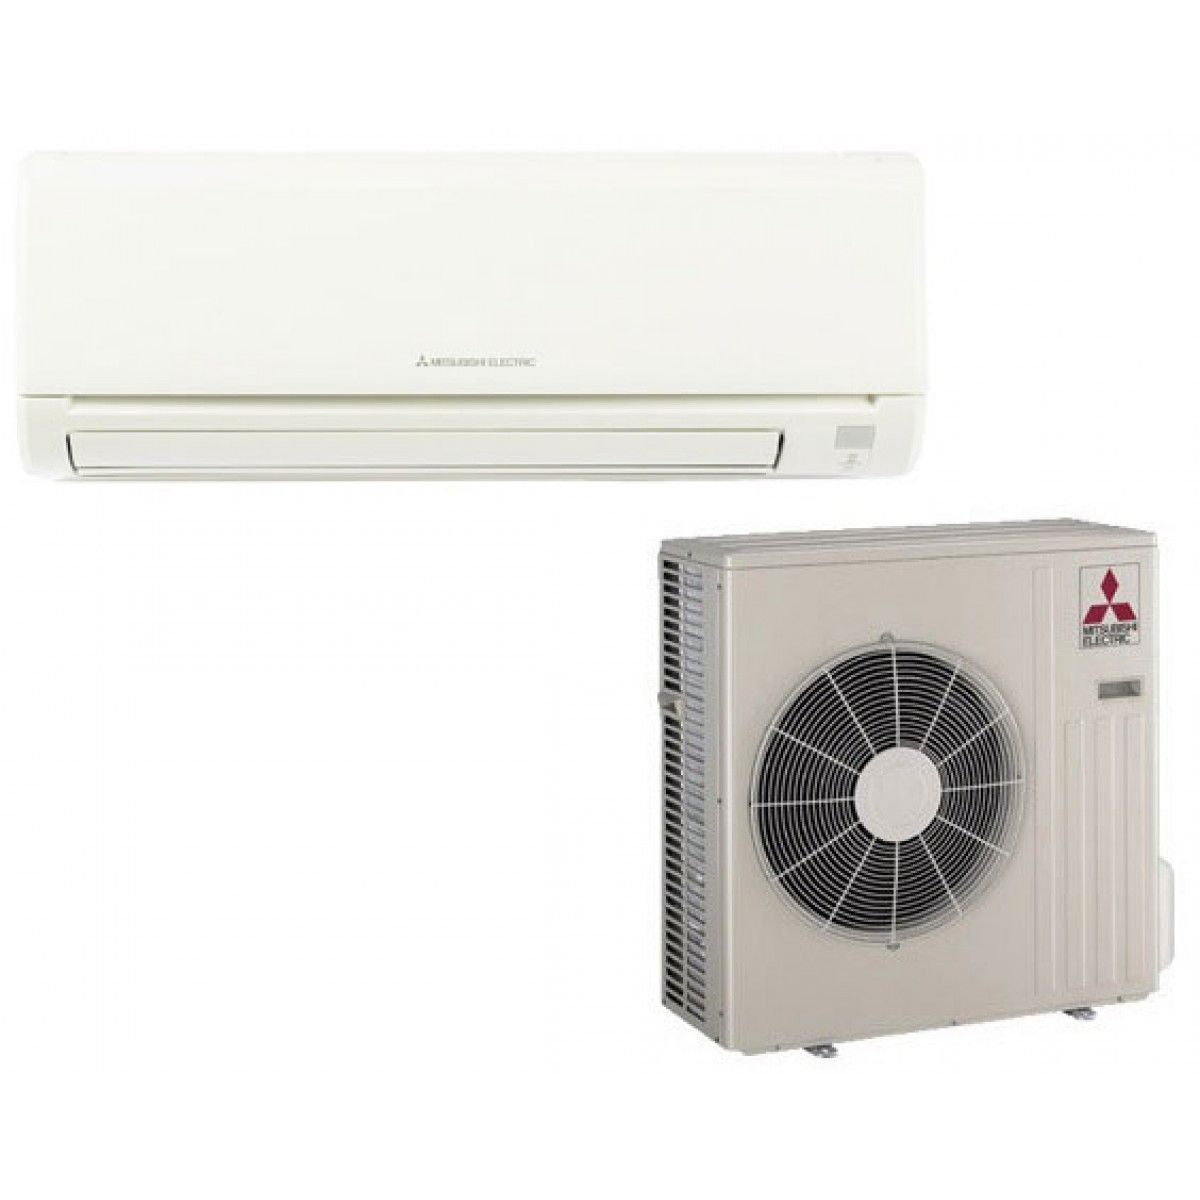 How Much Does A Mitsubishi Ductless Air Conditioner Cost Split Ac Unit Wiring Mr Slim 36000 Btu Cooling Only Mini 15 Seer